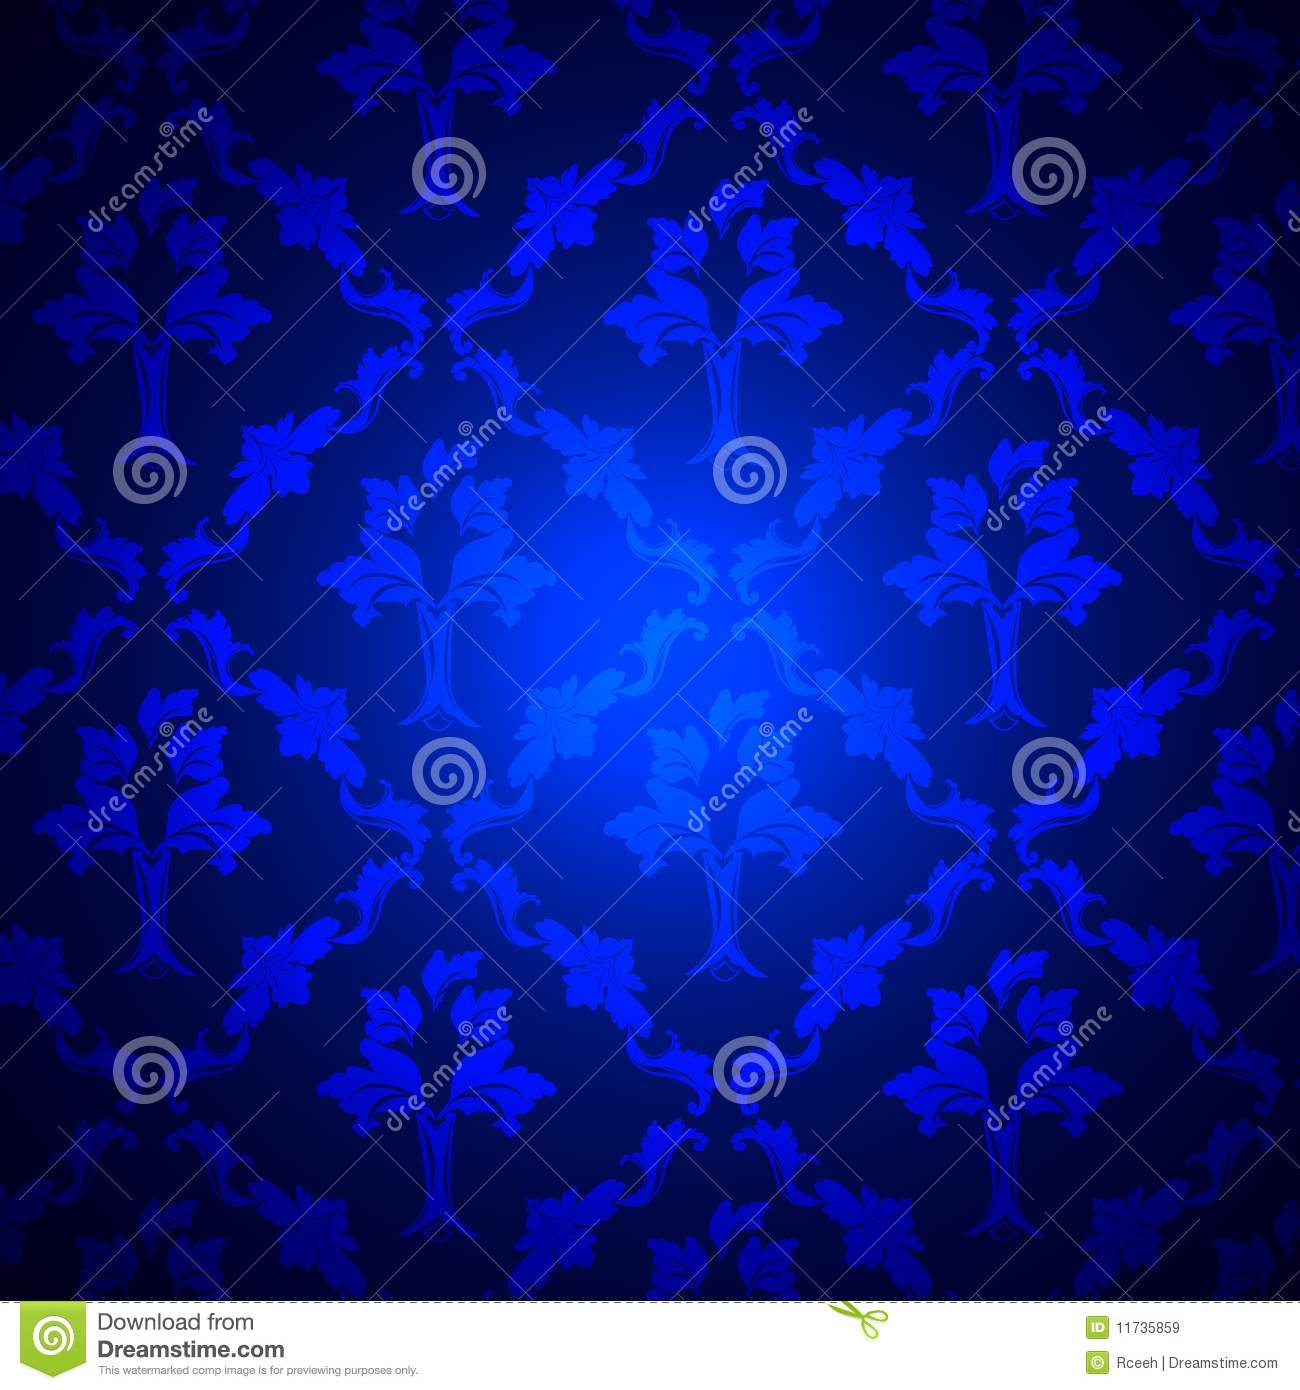 Texture background of seamless damask blue wallpaper stock photo - Royal Blue Damask Royalty Free Stock Images Image 11735859